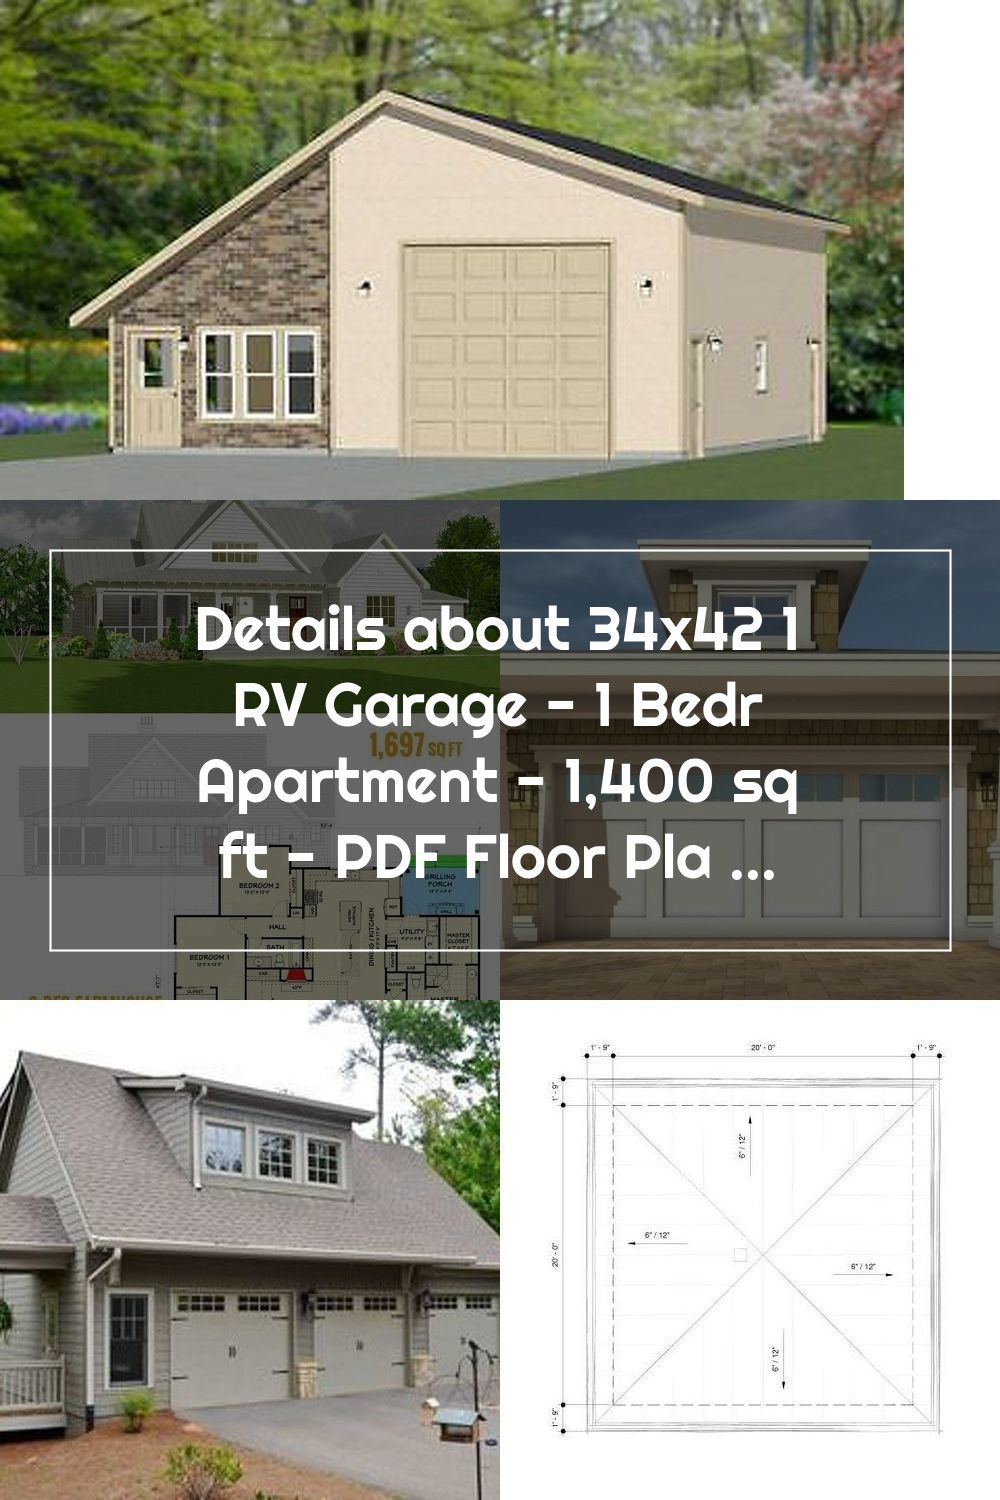 If You Ever Need It Resent Just Ask Ceiling Framing Plan Roof Framing Plan Roof Pitch 8 12 And 4 12 An Estimated M In 2020 Roof Framing Garage Plans Pitched Roof